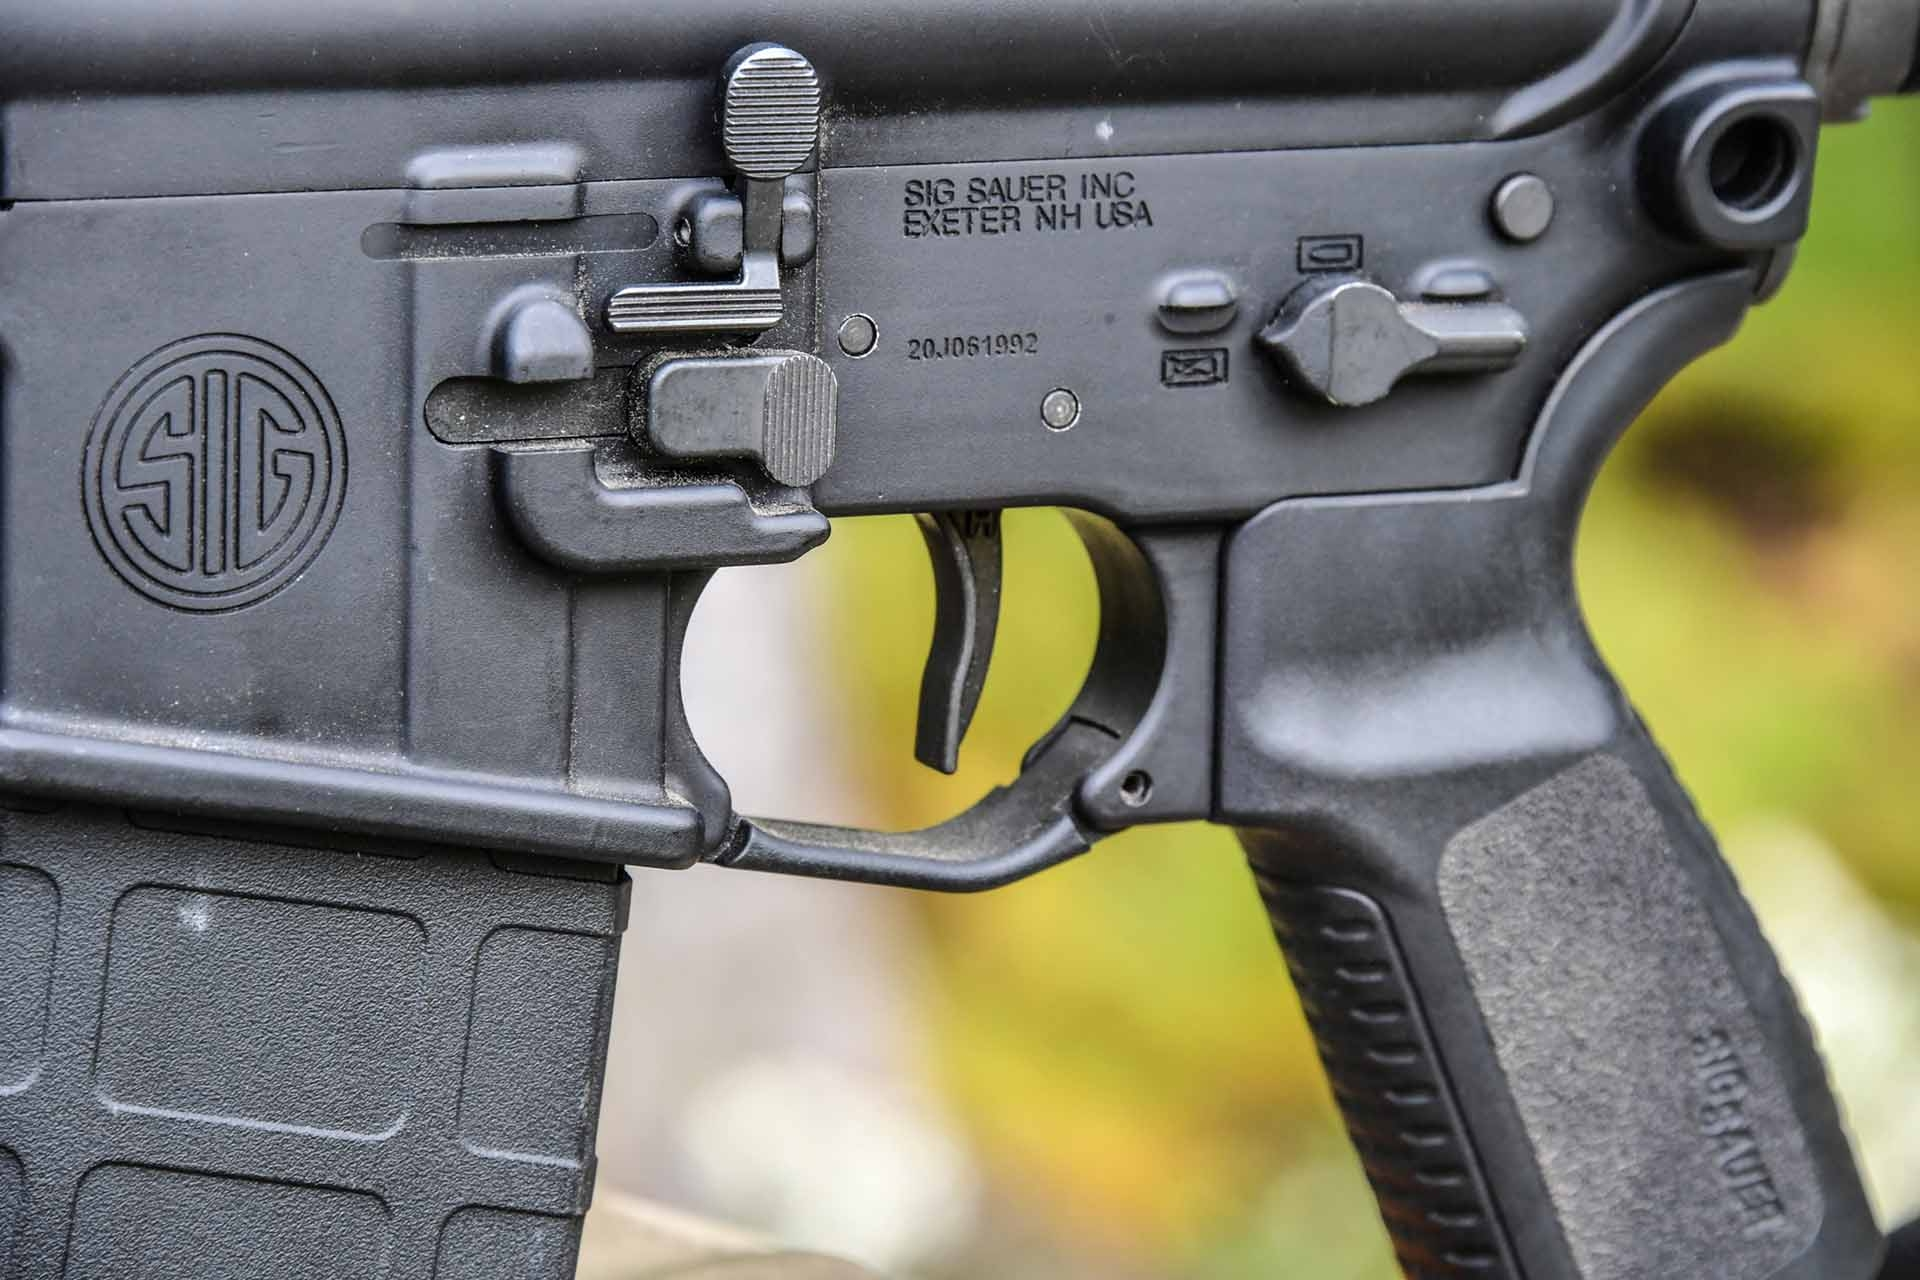 The ambidextrous controls of the SIG Sauer M400 TREAD